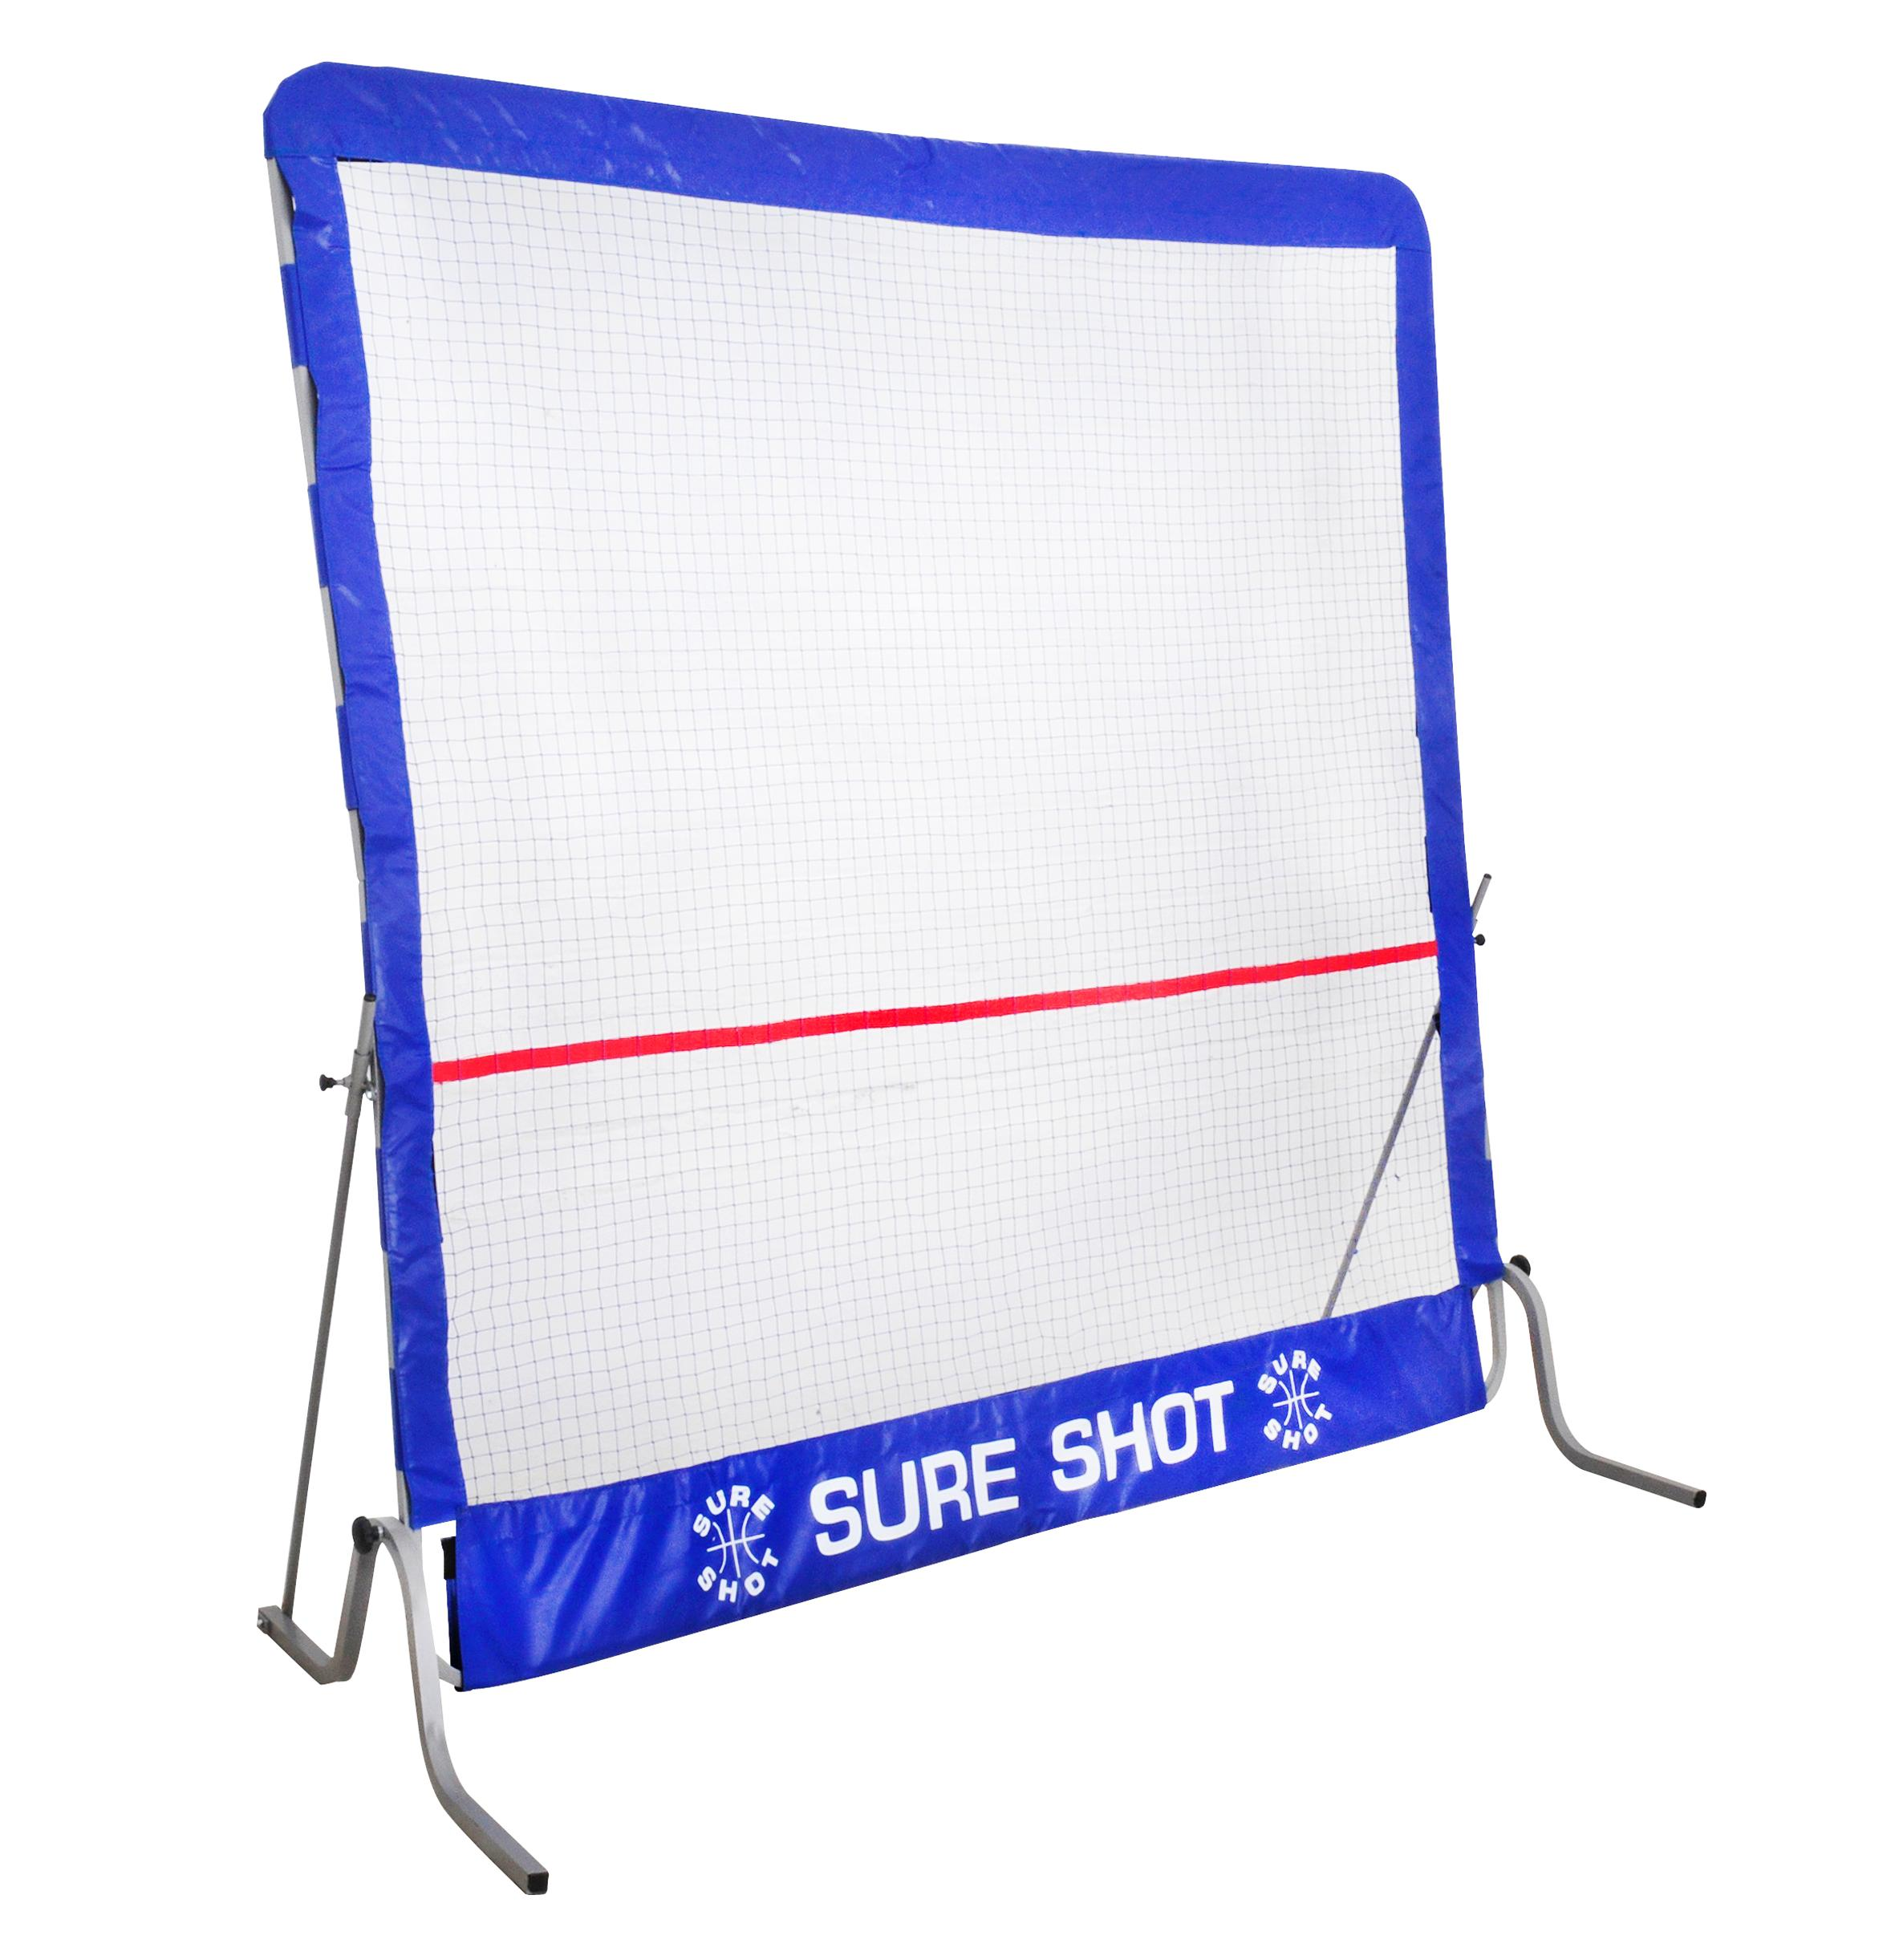 Sure Shot Mini Squash Rebound Wall